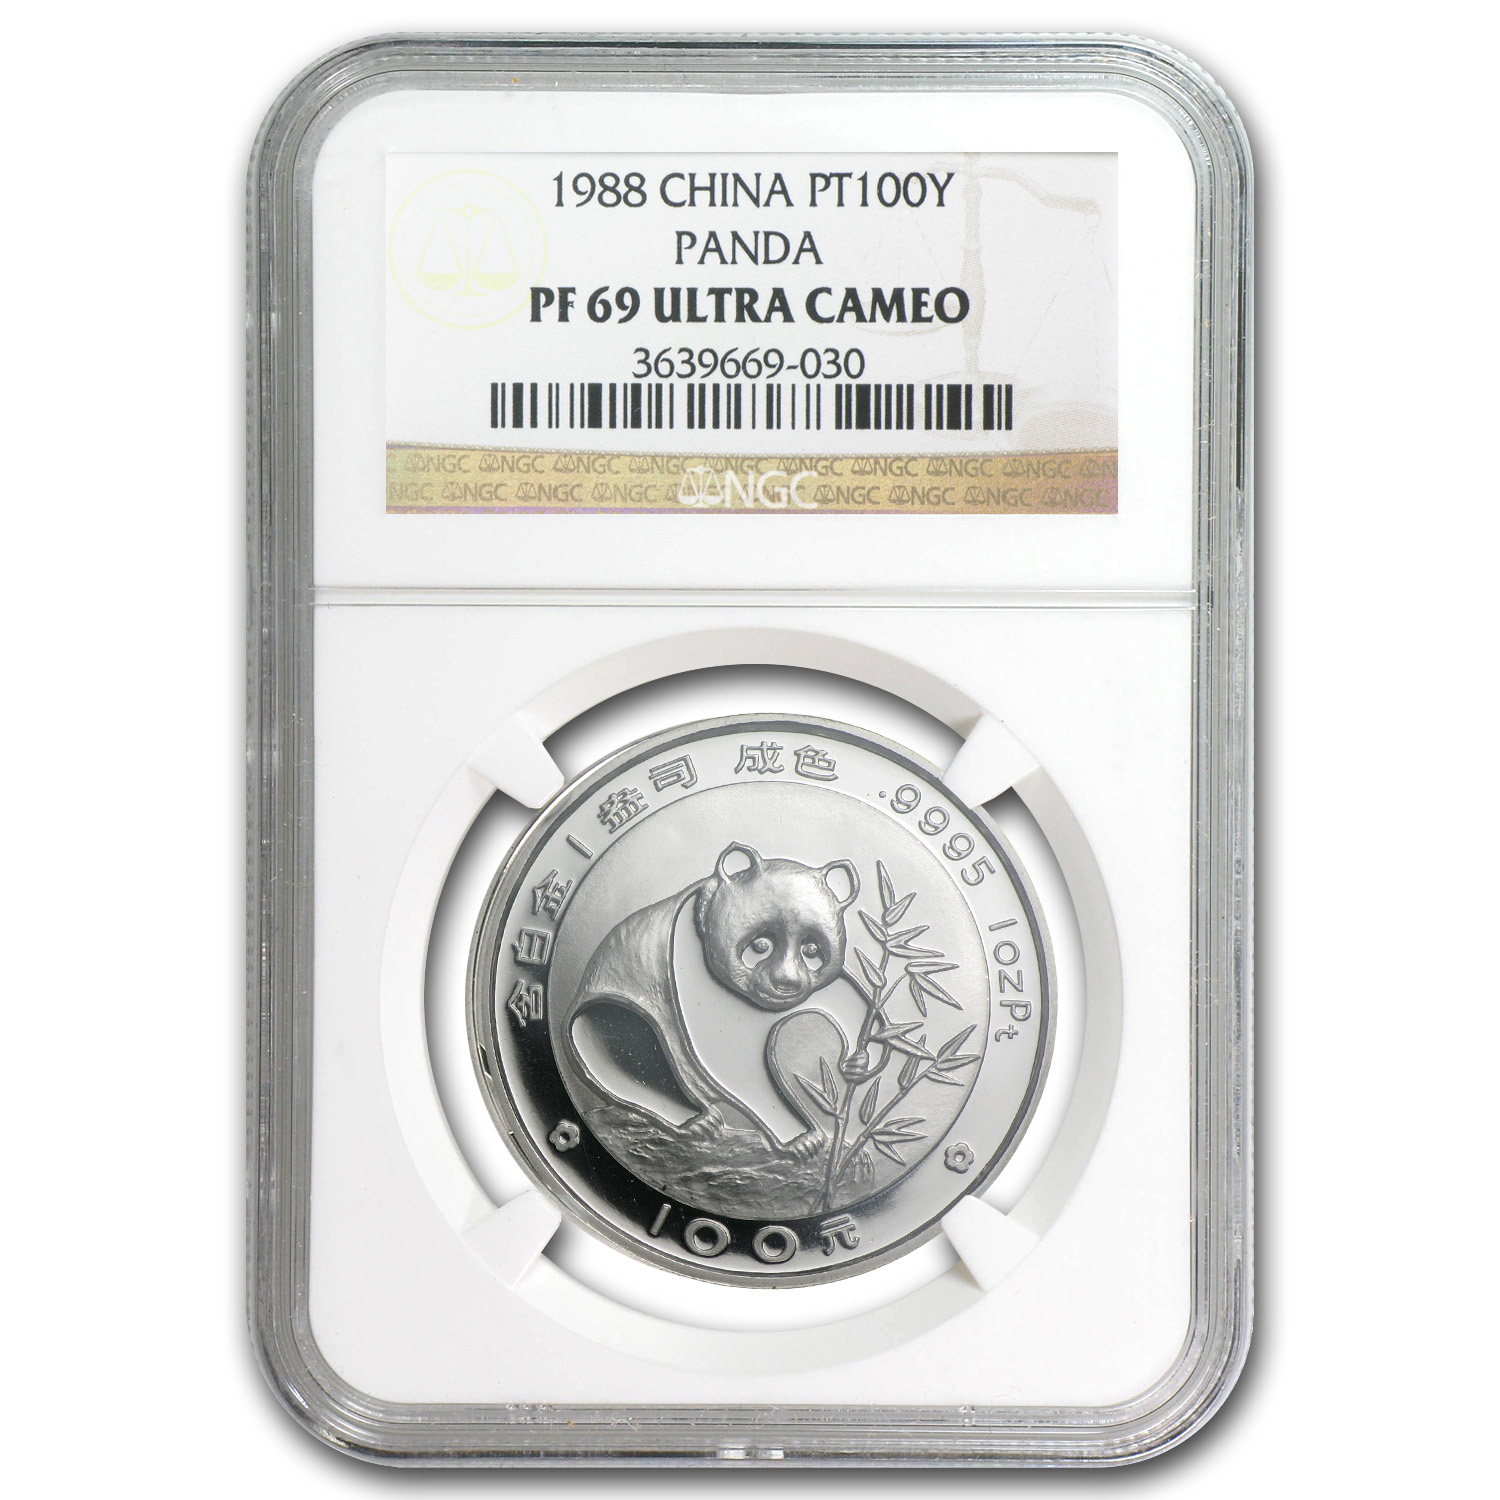 1988 1 oz Proof Platinum Chinese Panda PF-69 NGC